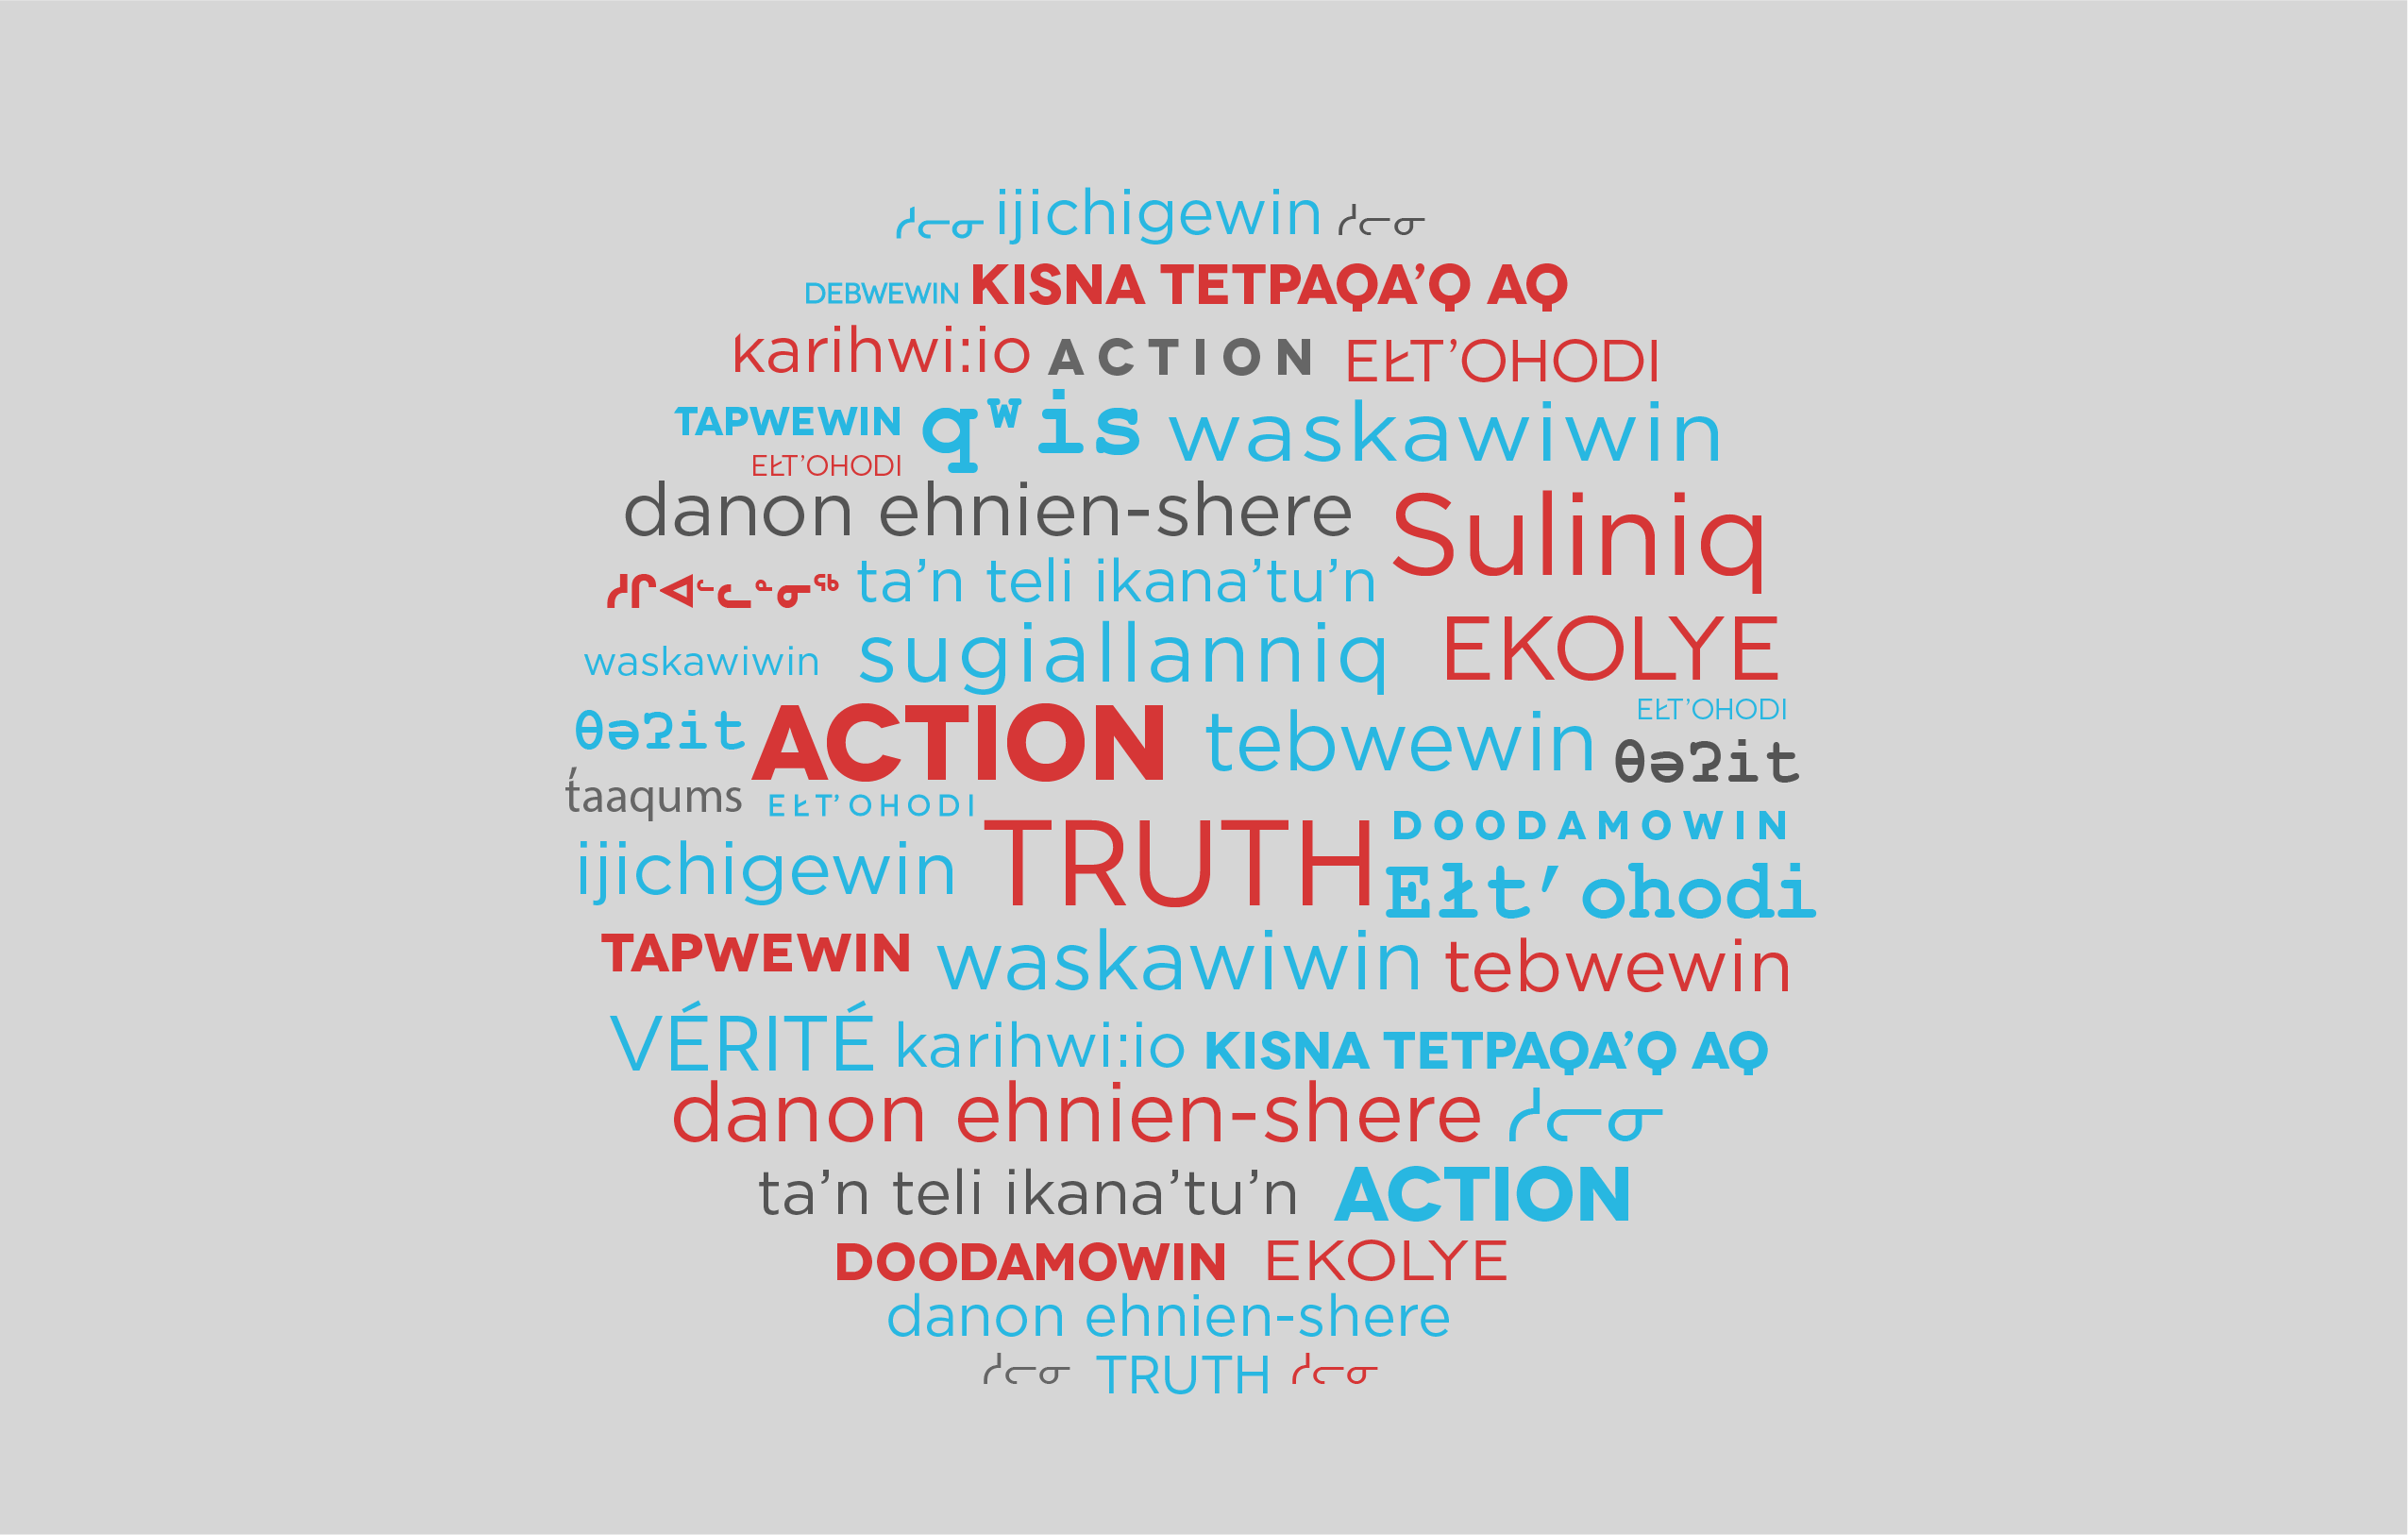 Action and Truth in various languages notably Indigenous languages